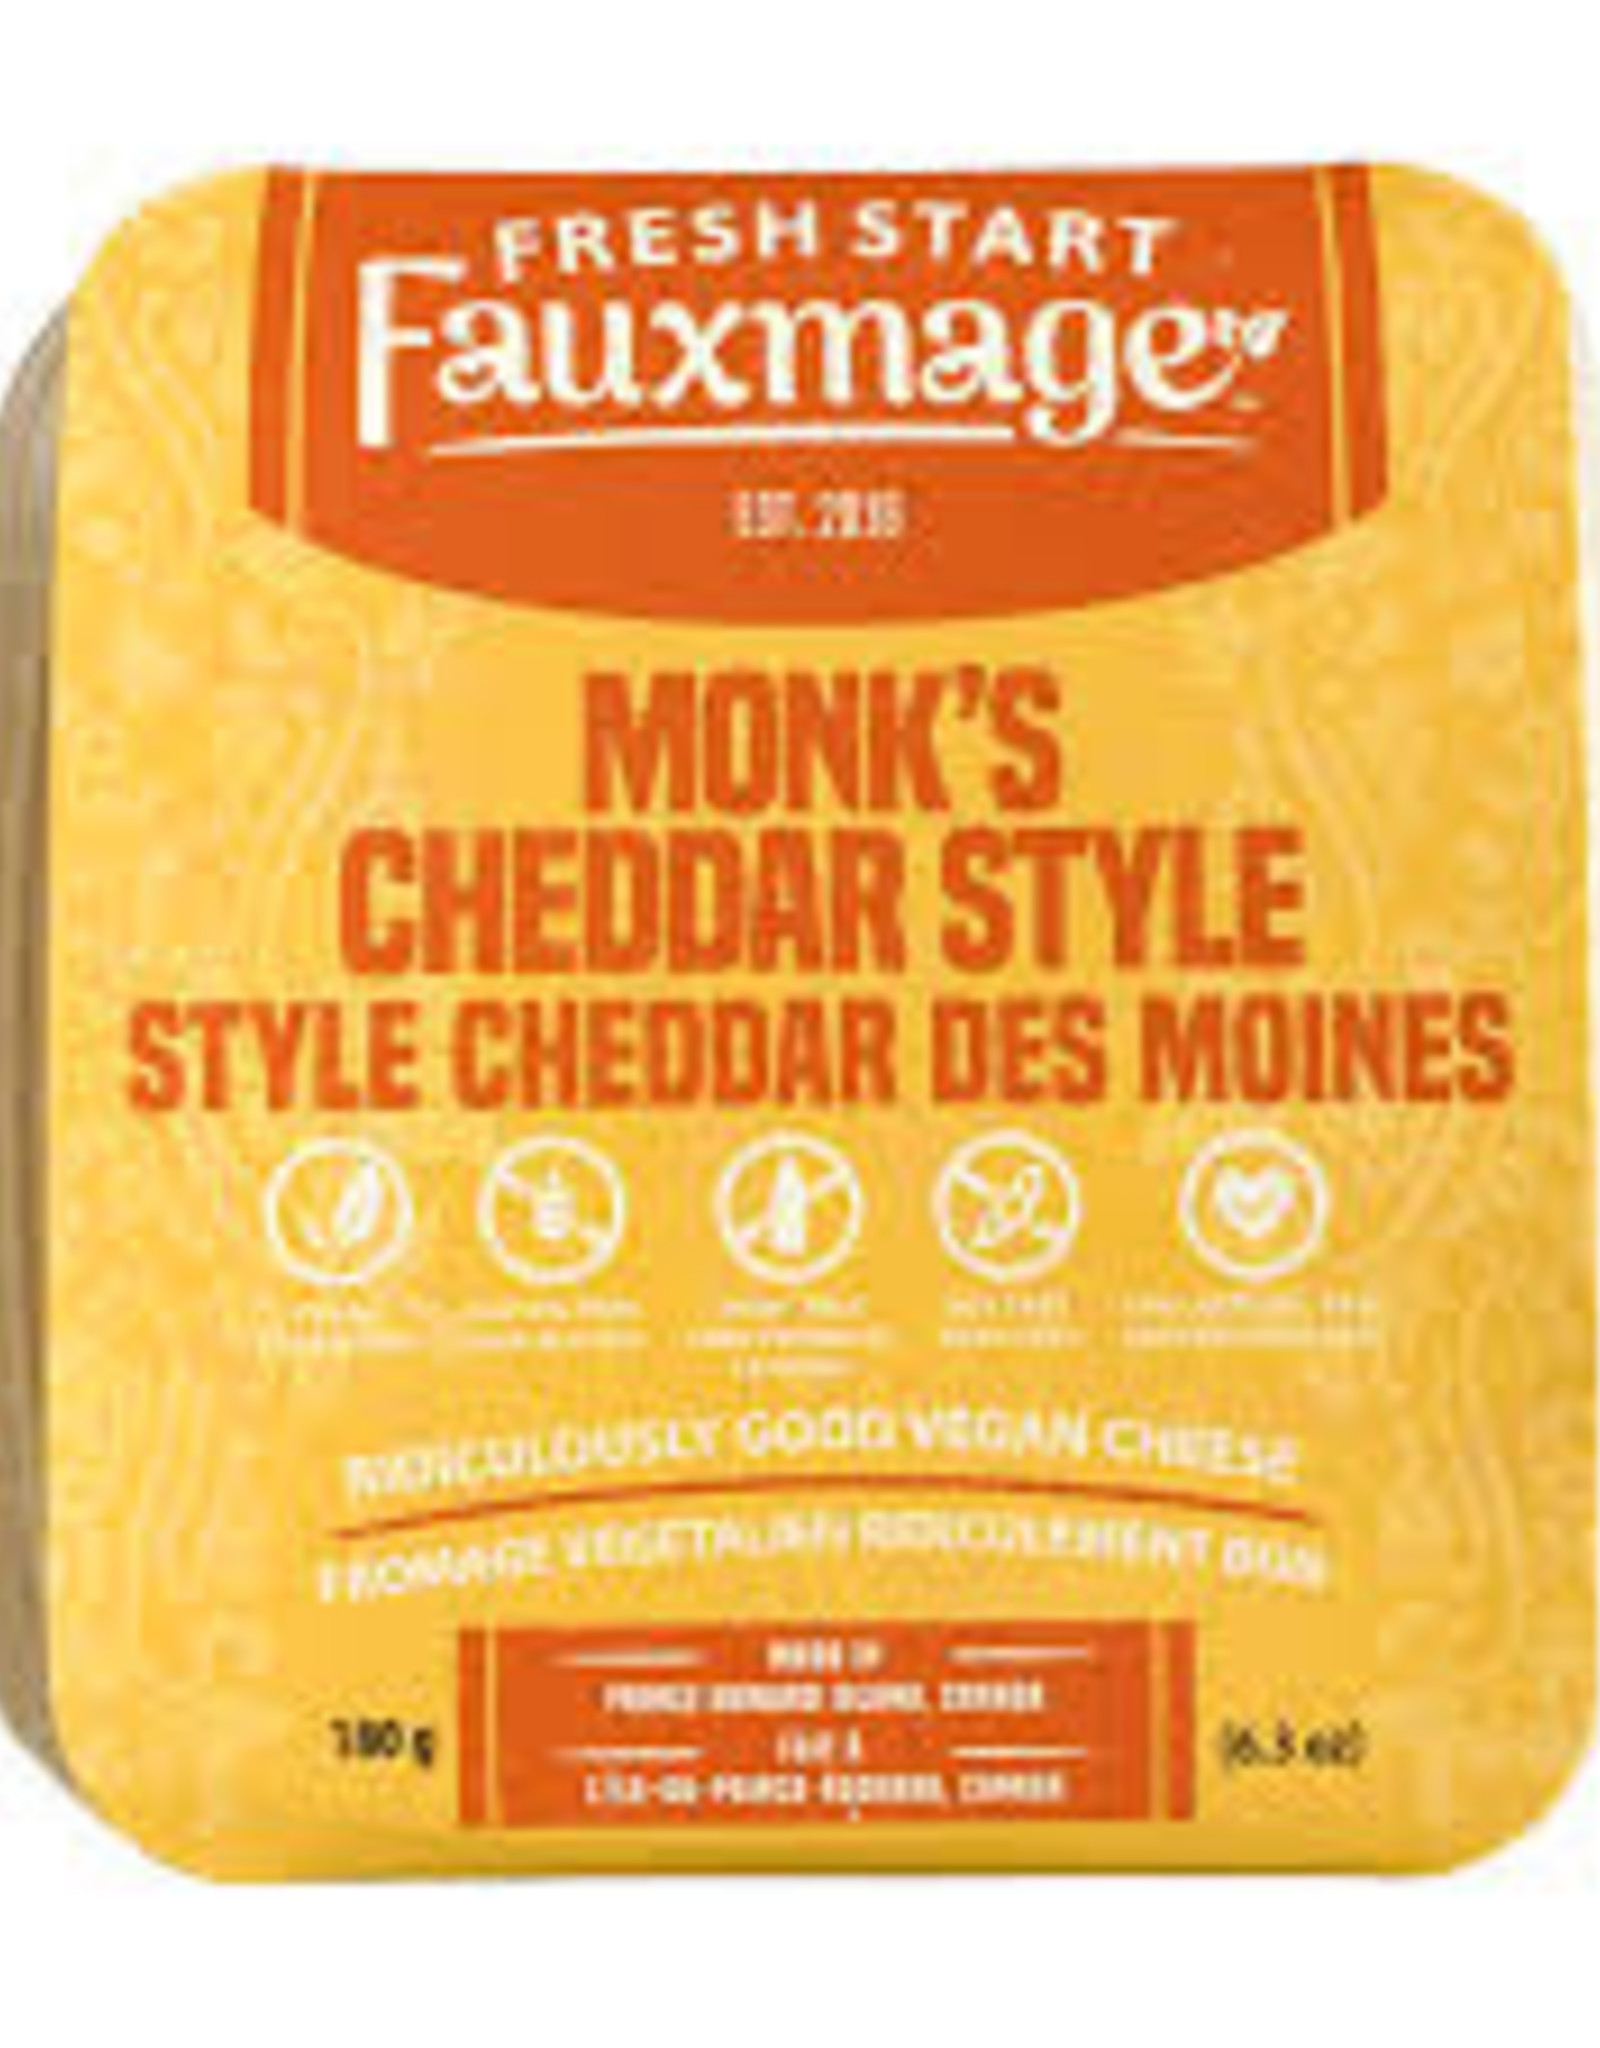 Fresh Start Fauxmage Fresh Start Fauxmage - Monks Cheddar (180g)